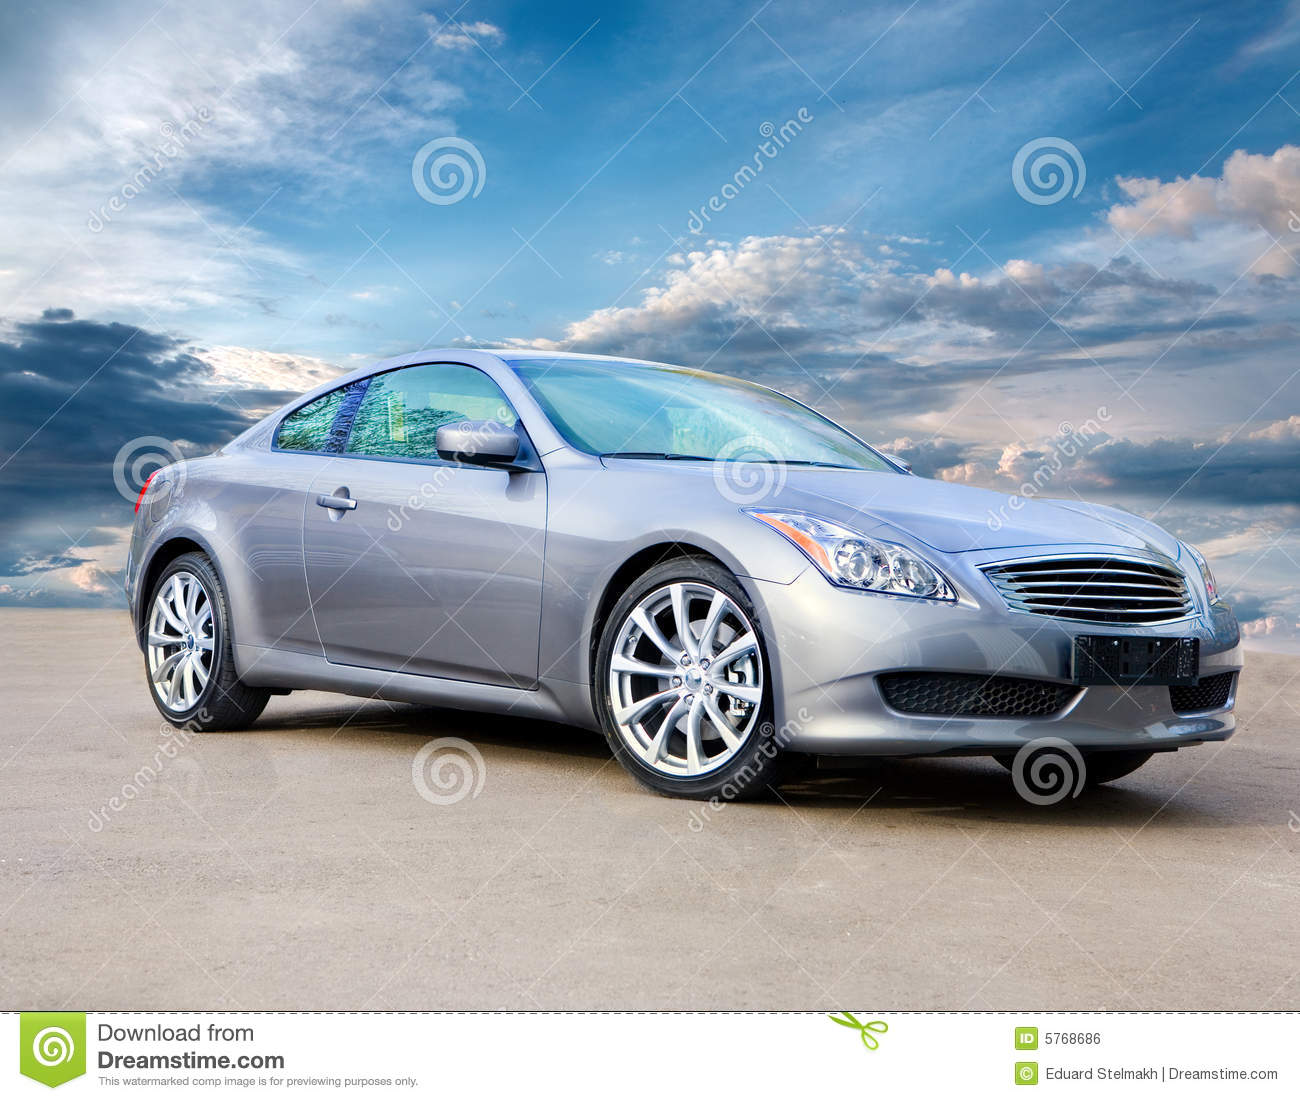 Luxury Sports Car Against Bright Cloudy Sky Royalty Free